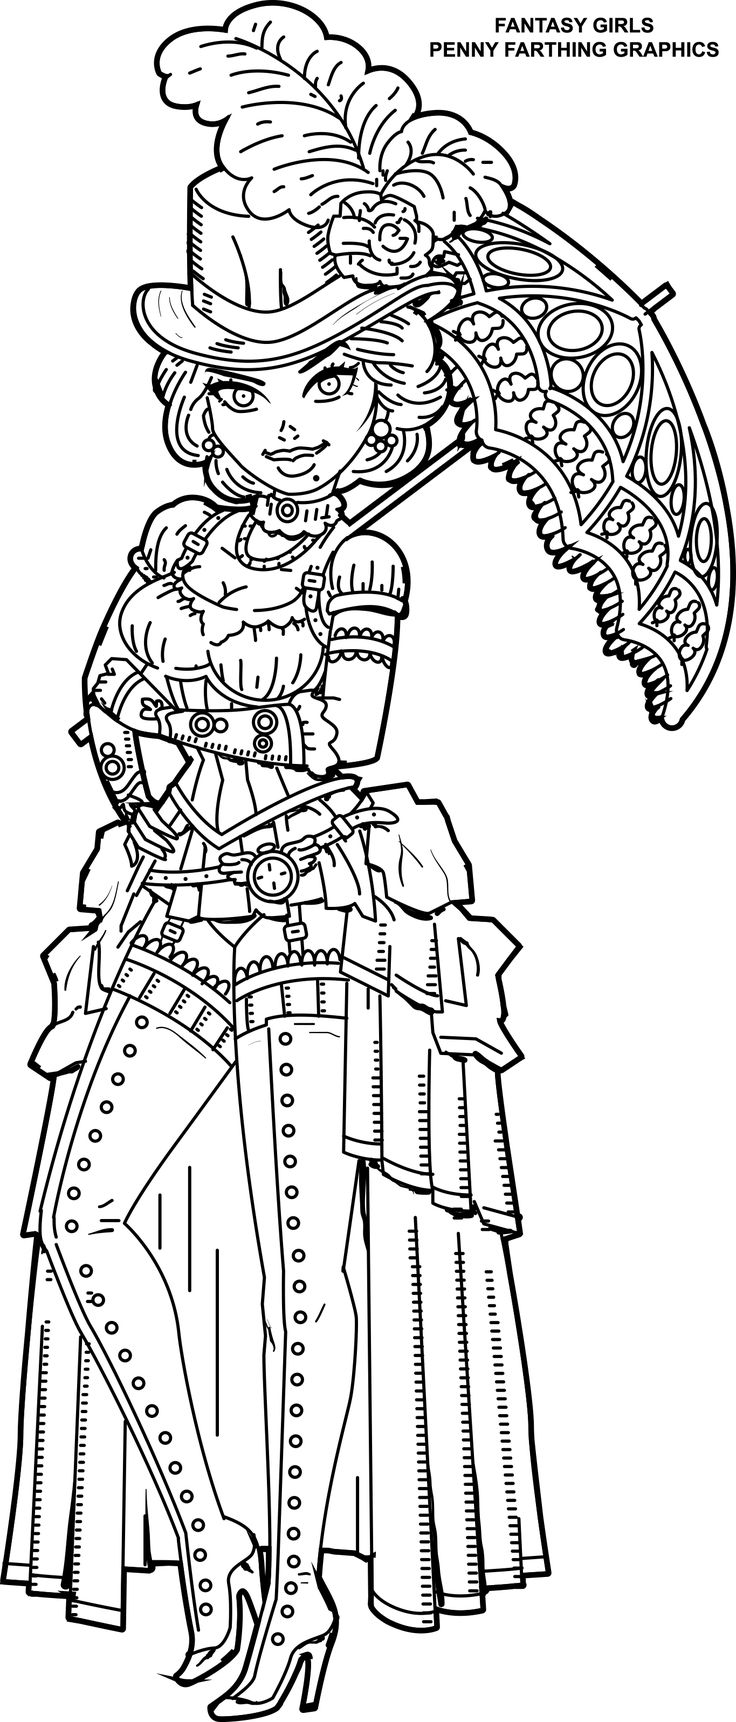 Steampunk Coloring Page from Fantasy Girls: Femme Fatales, Steampunk, Goth and Fantasy Girls Coloring Book by Penny Farthing Graphics on amazon.com